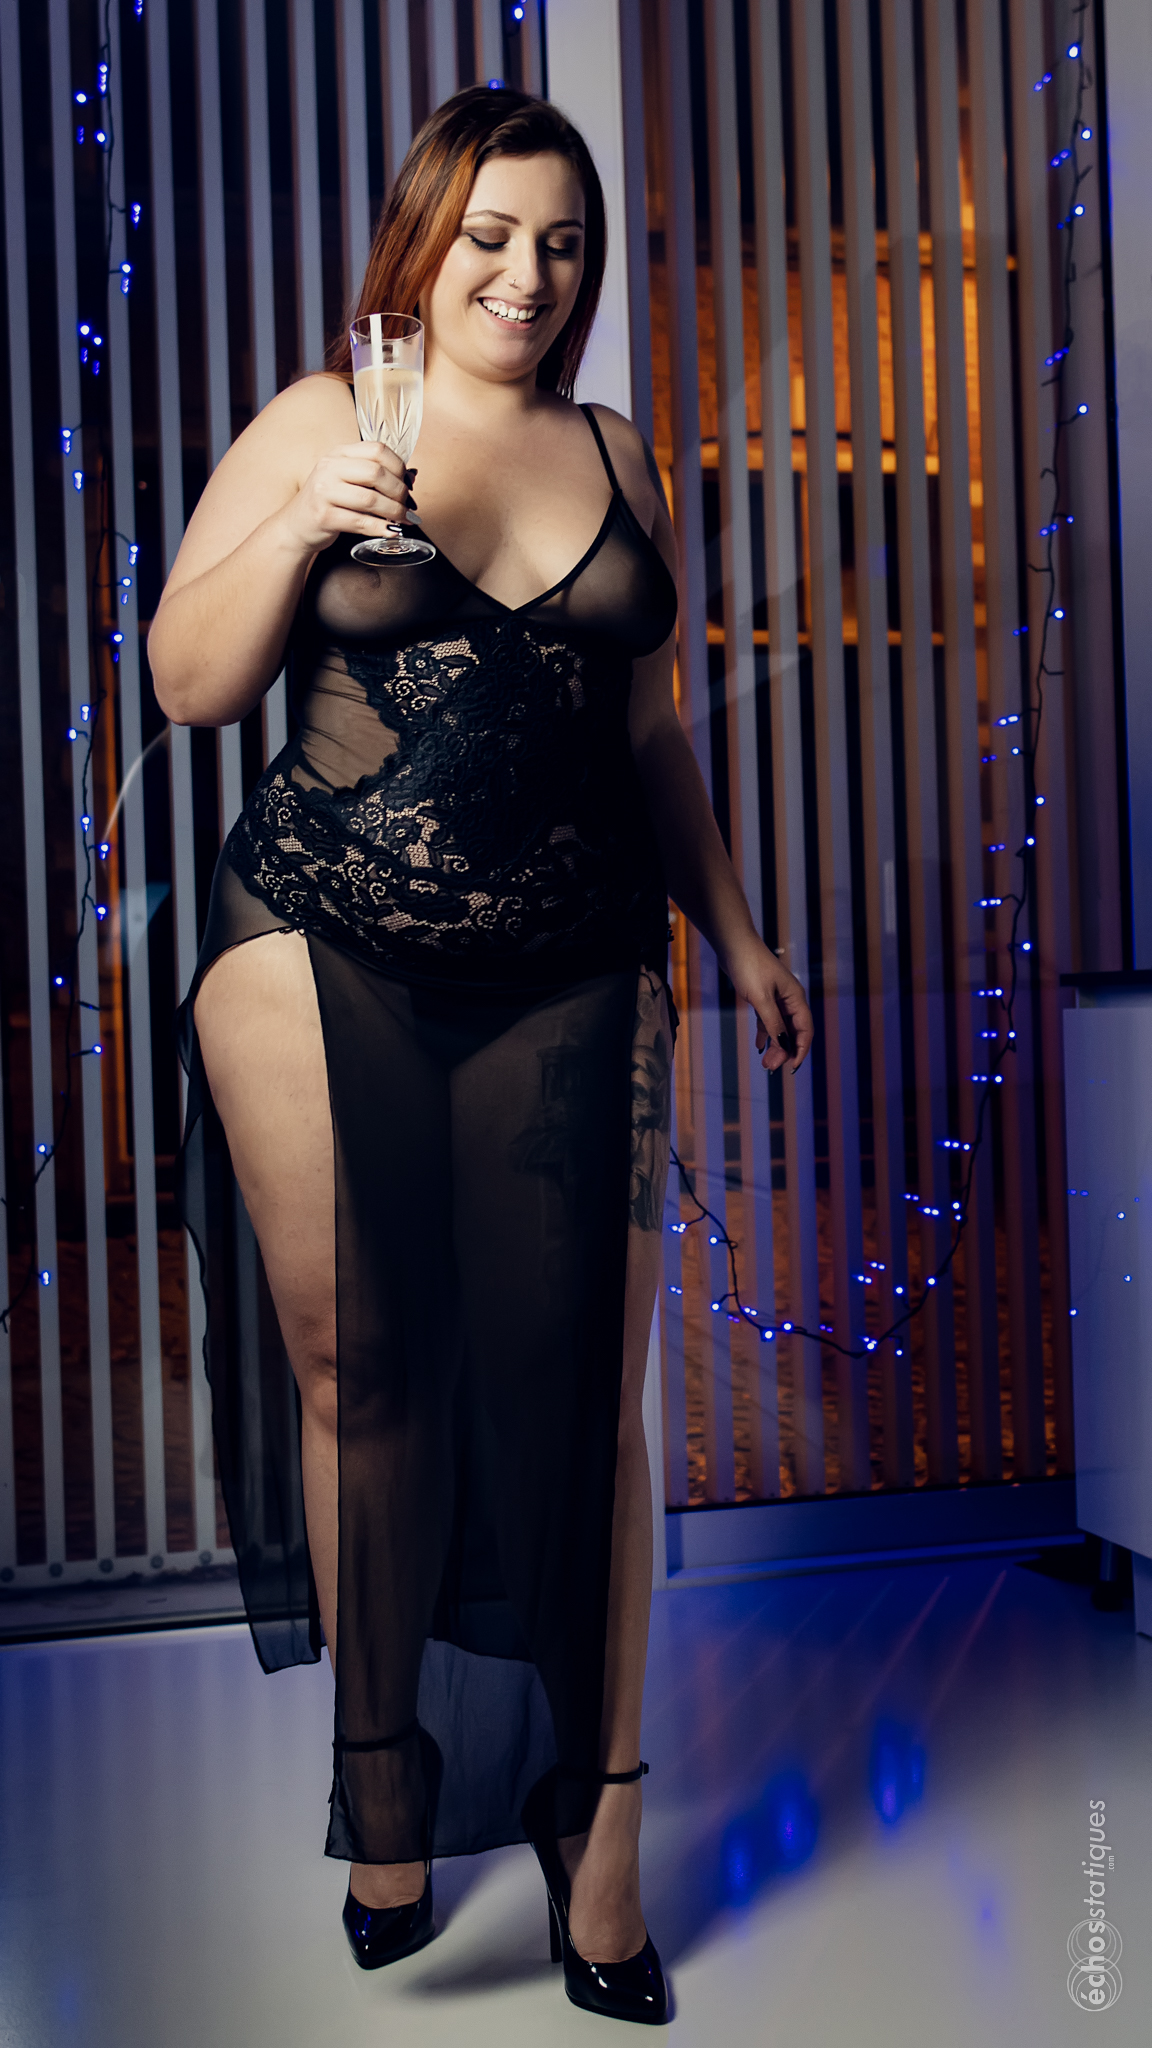 blog-lingerie-grande-taille-nuisette-sexy-passage-du-desir-champagne